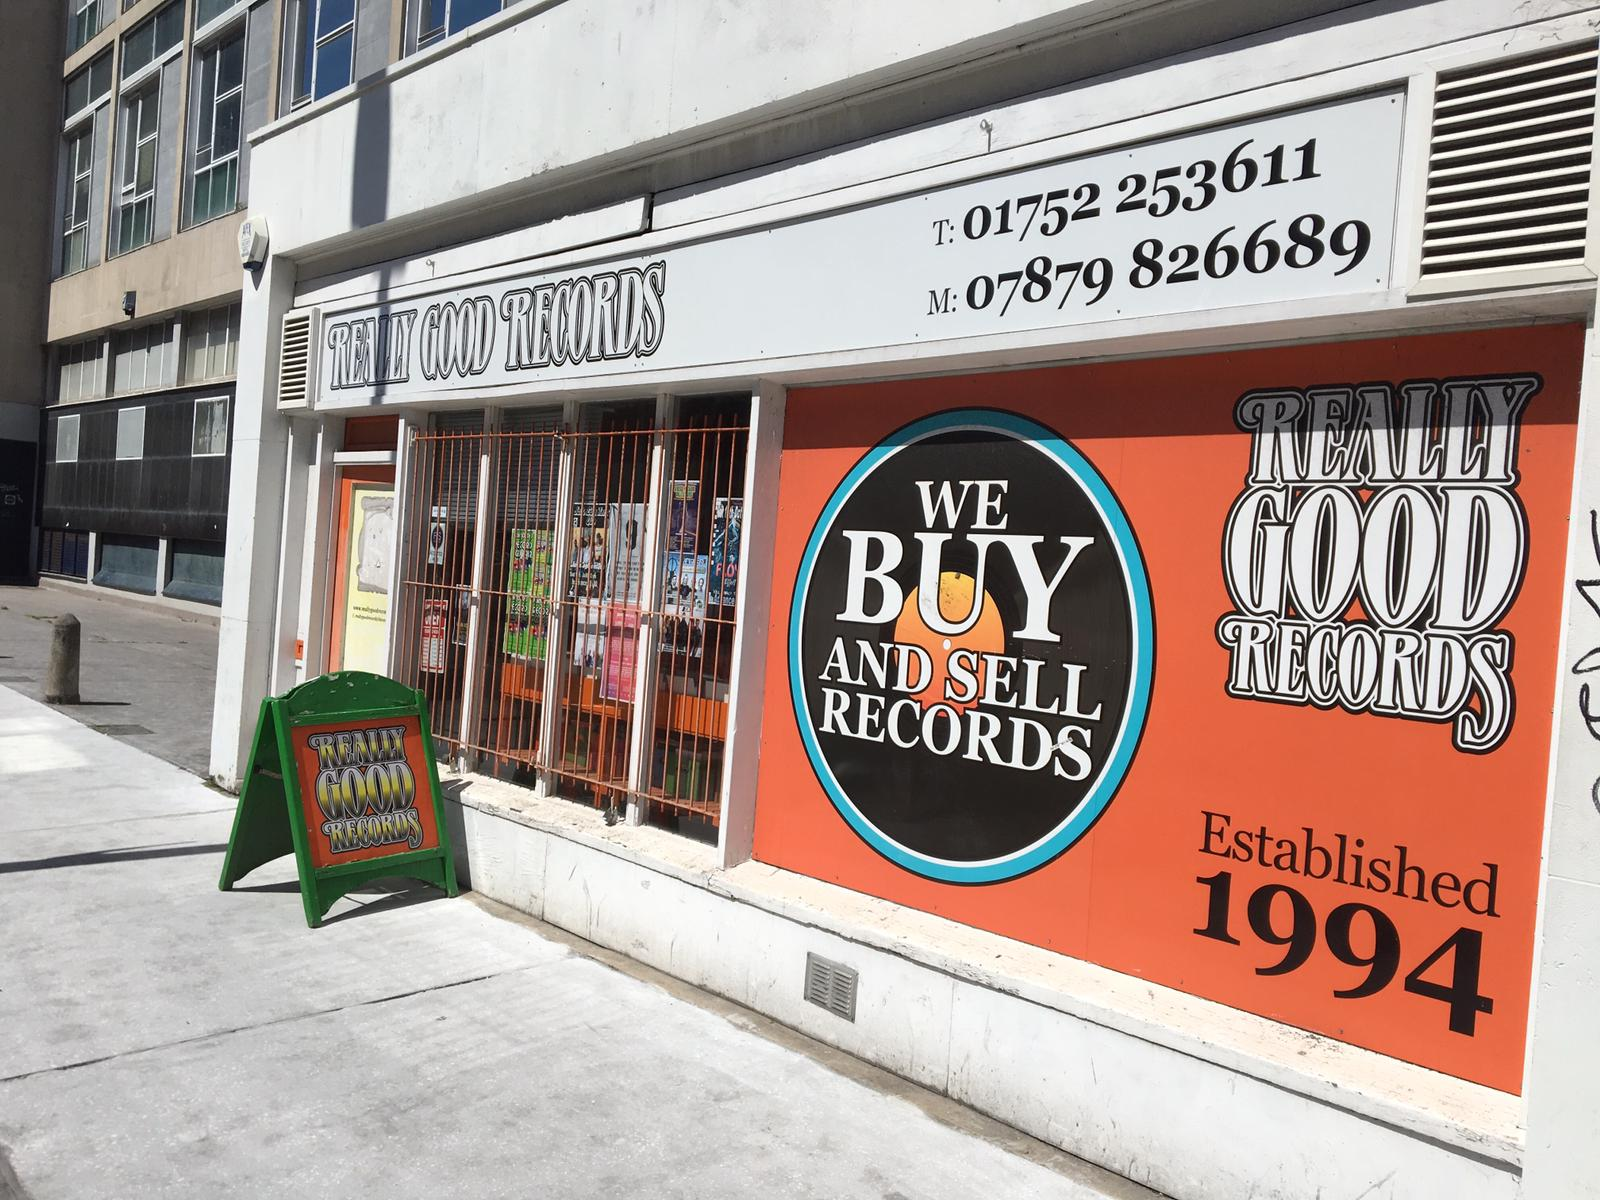 Really Good Records - Plymouth -